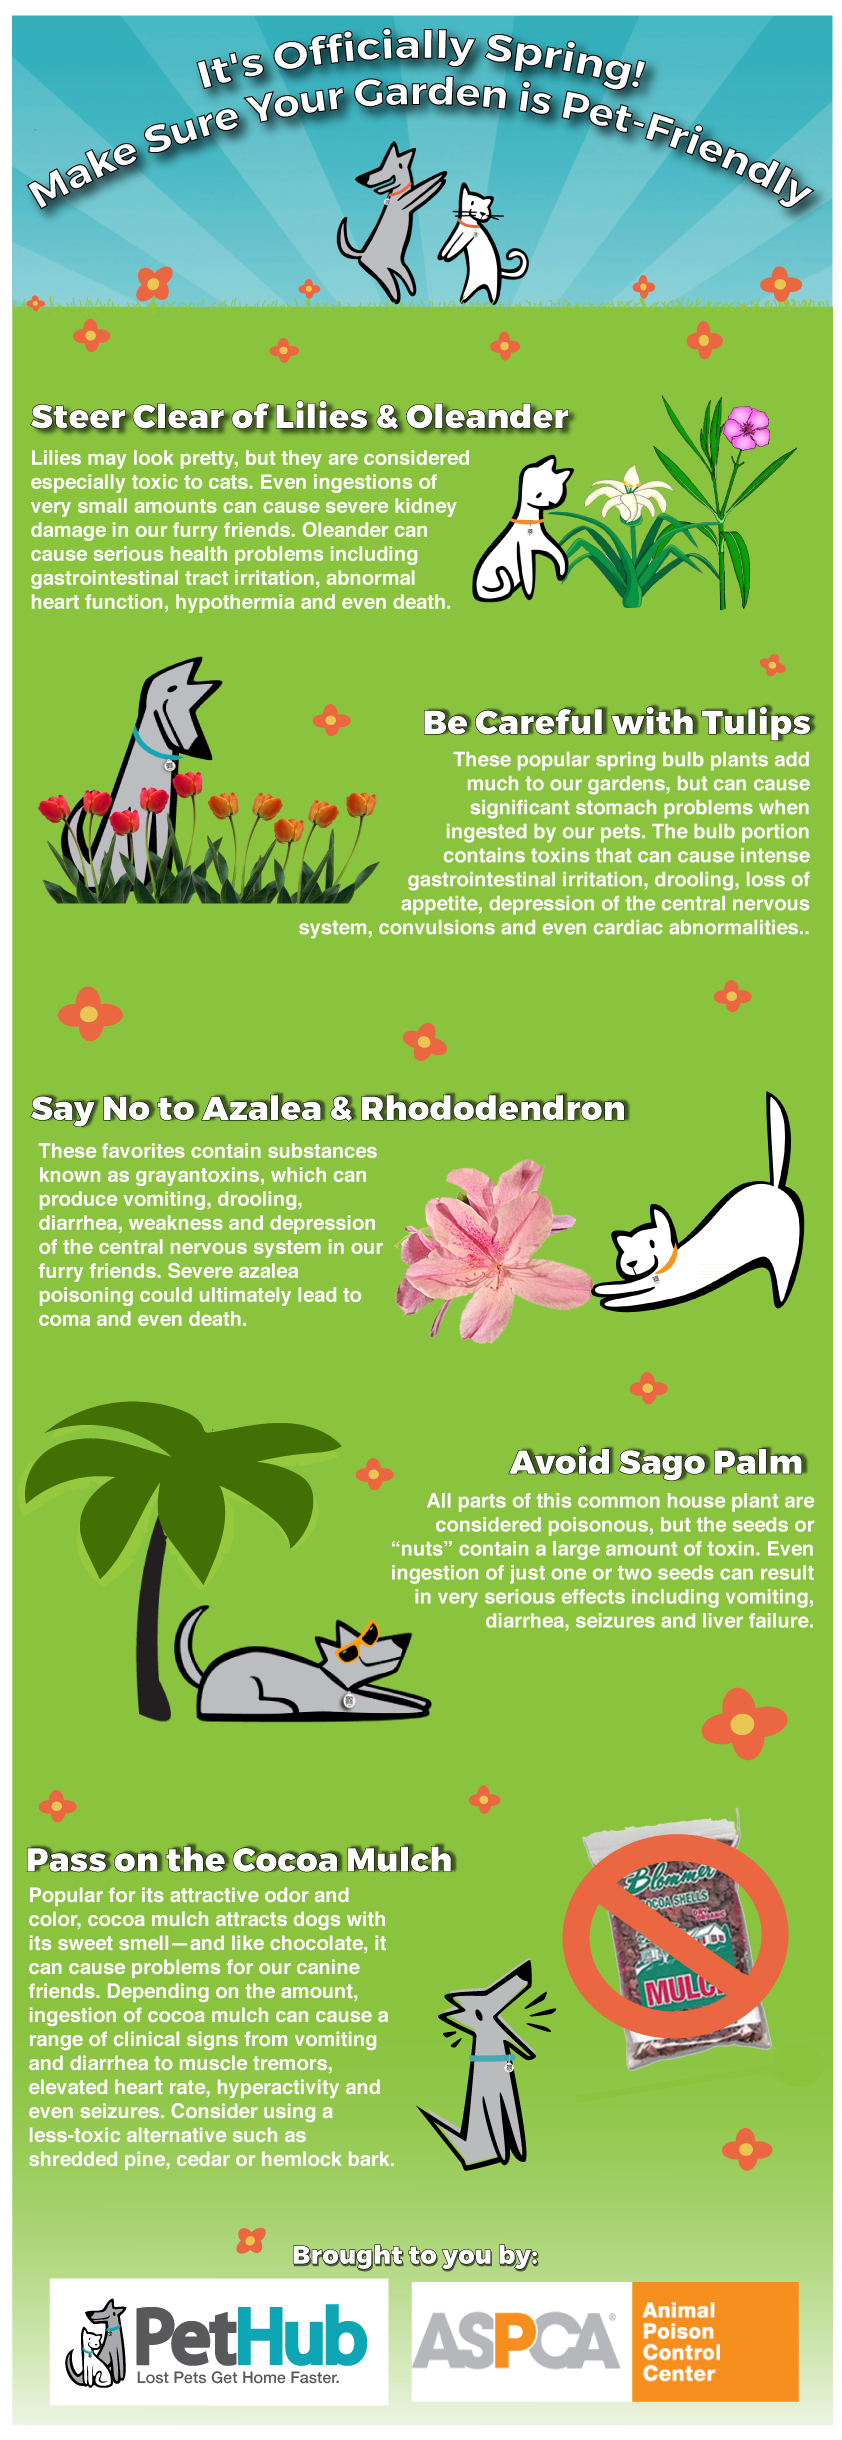 Make Sure Your Garden Is Pet-Friendly #infographic